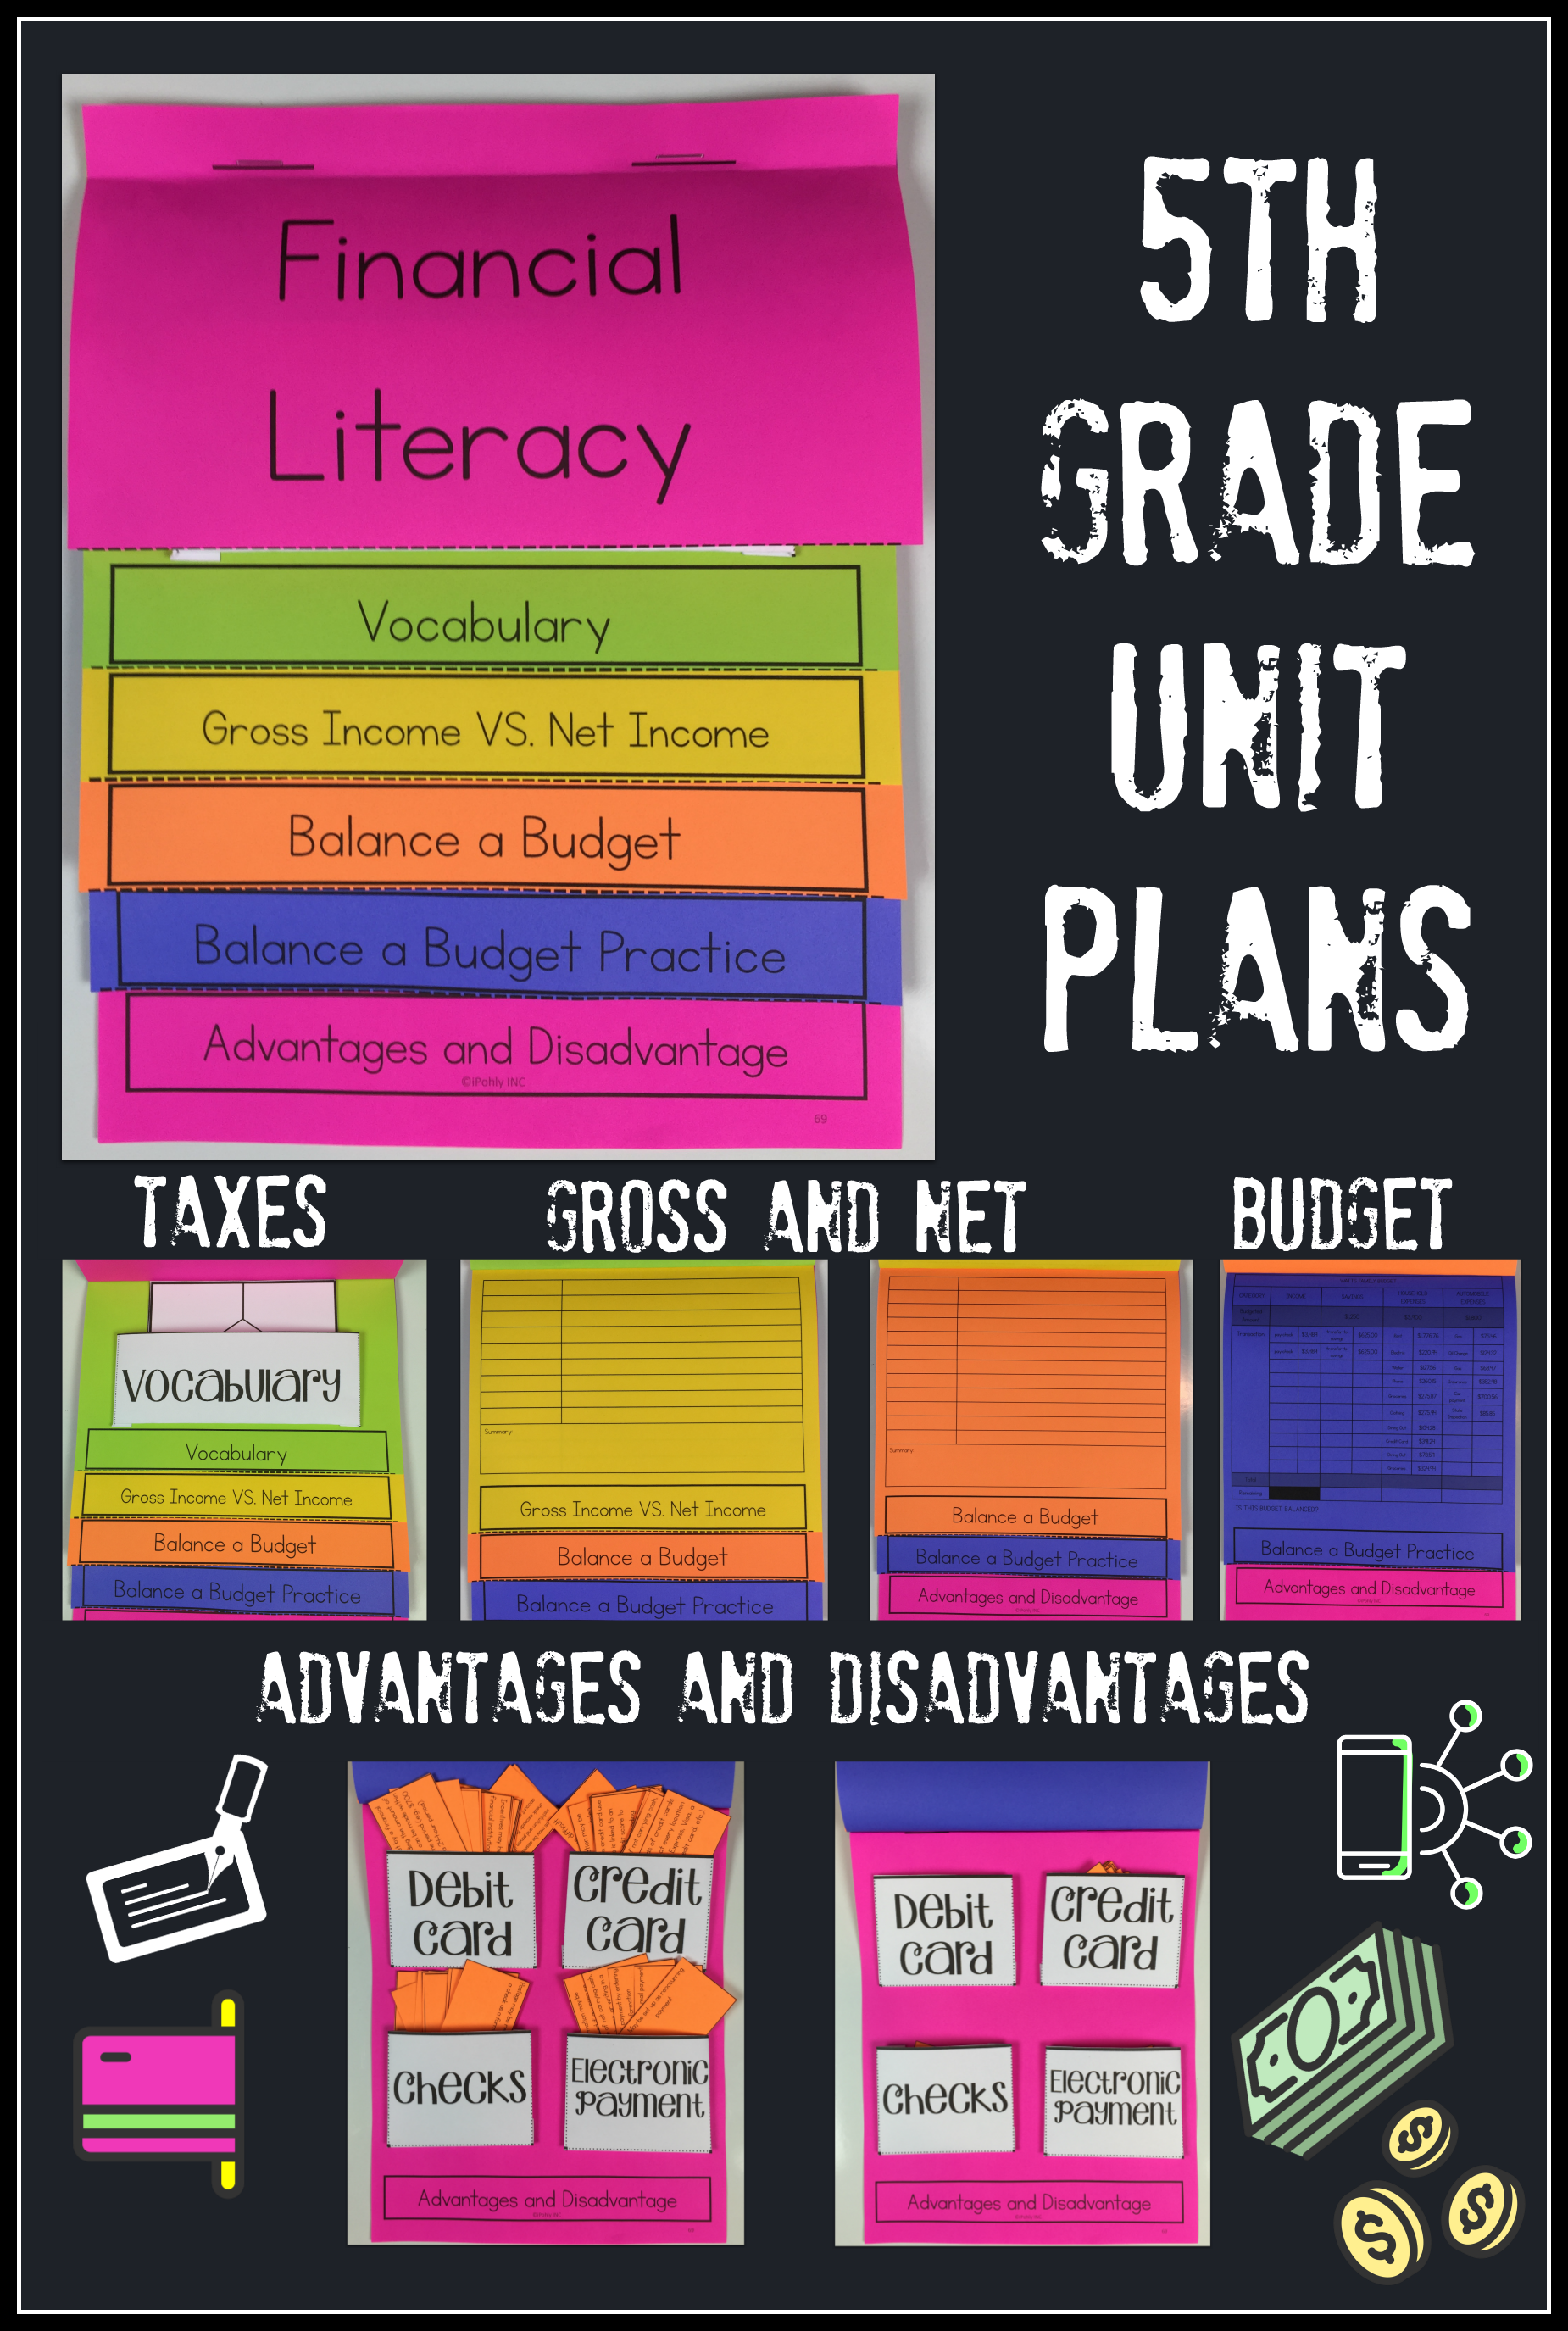 Financial Literacy For 5th Grade